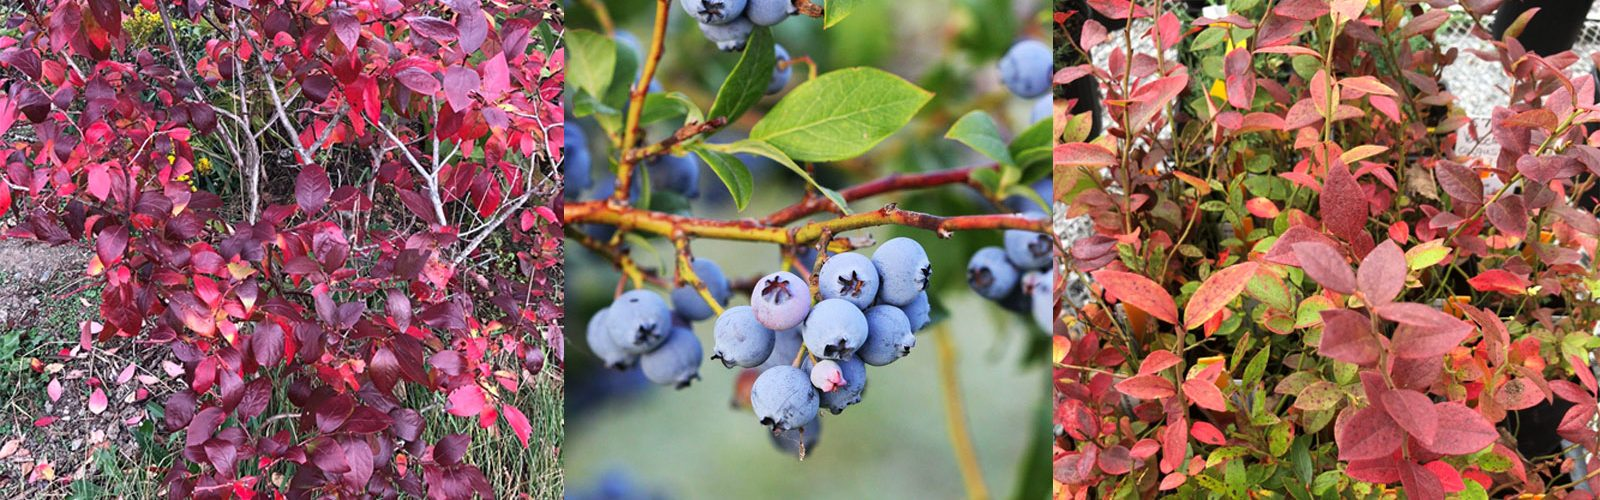 Beautiful Blueberries – Brighten Up Your Fall Landscape!